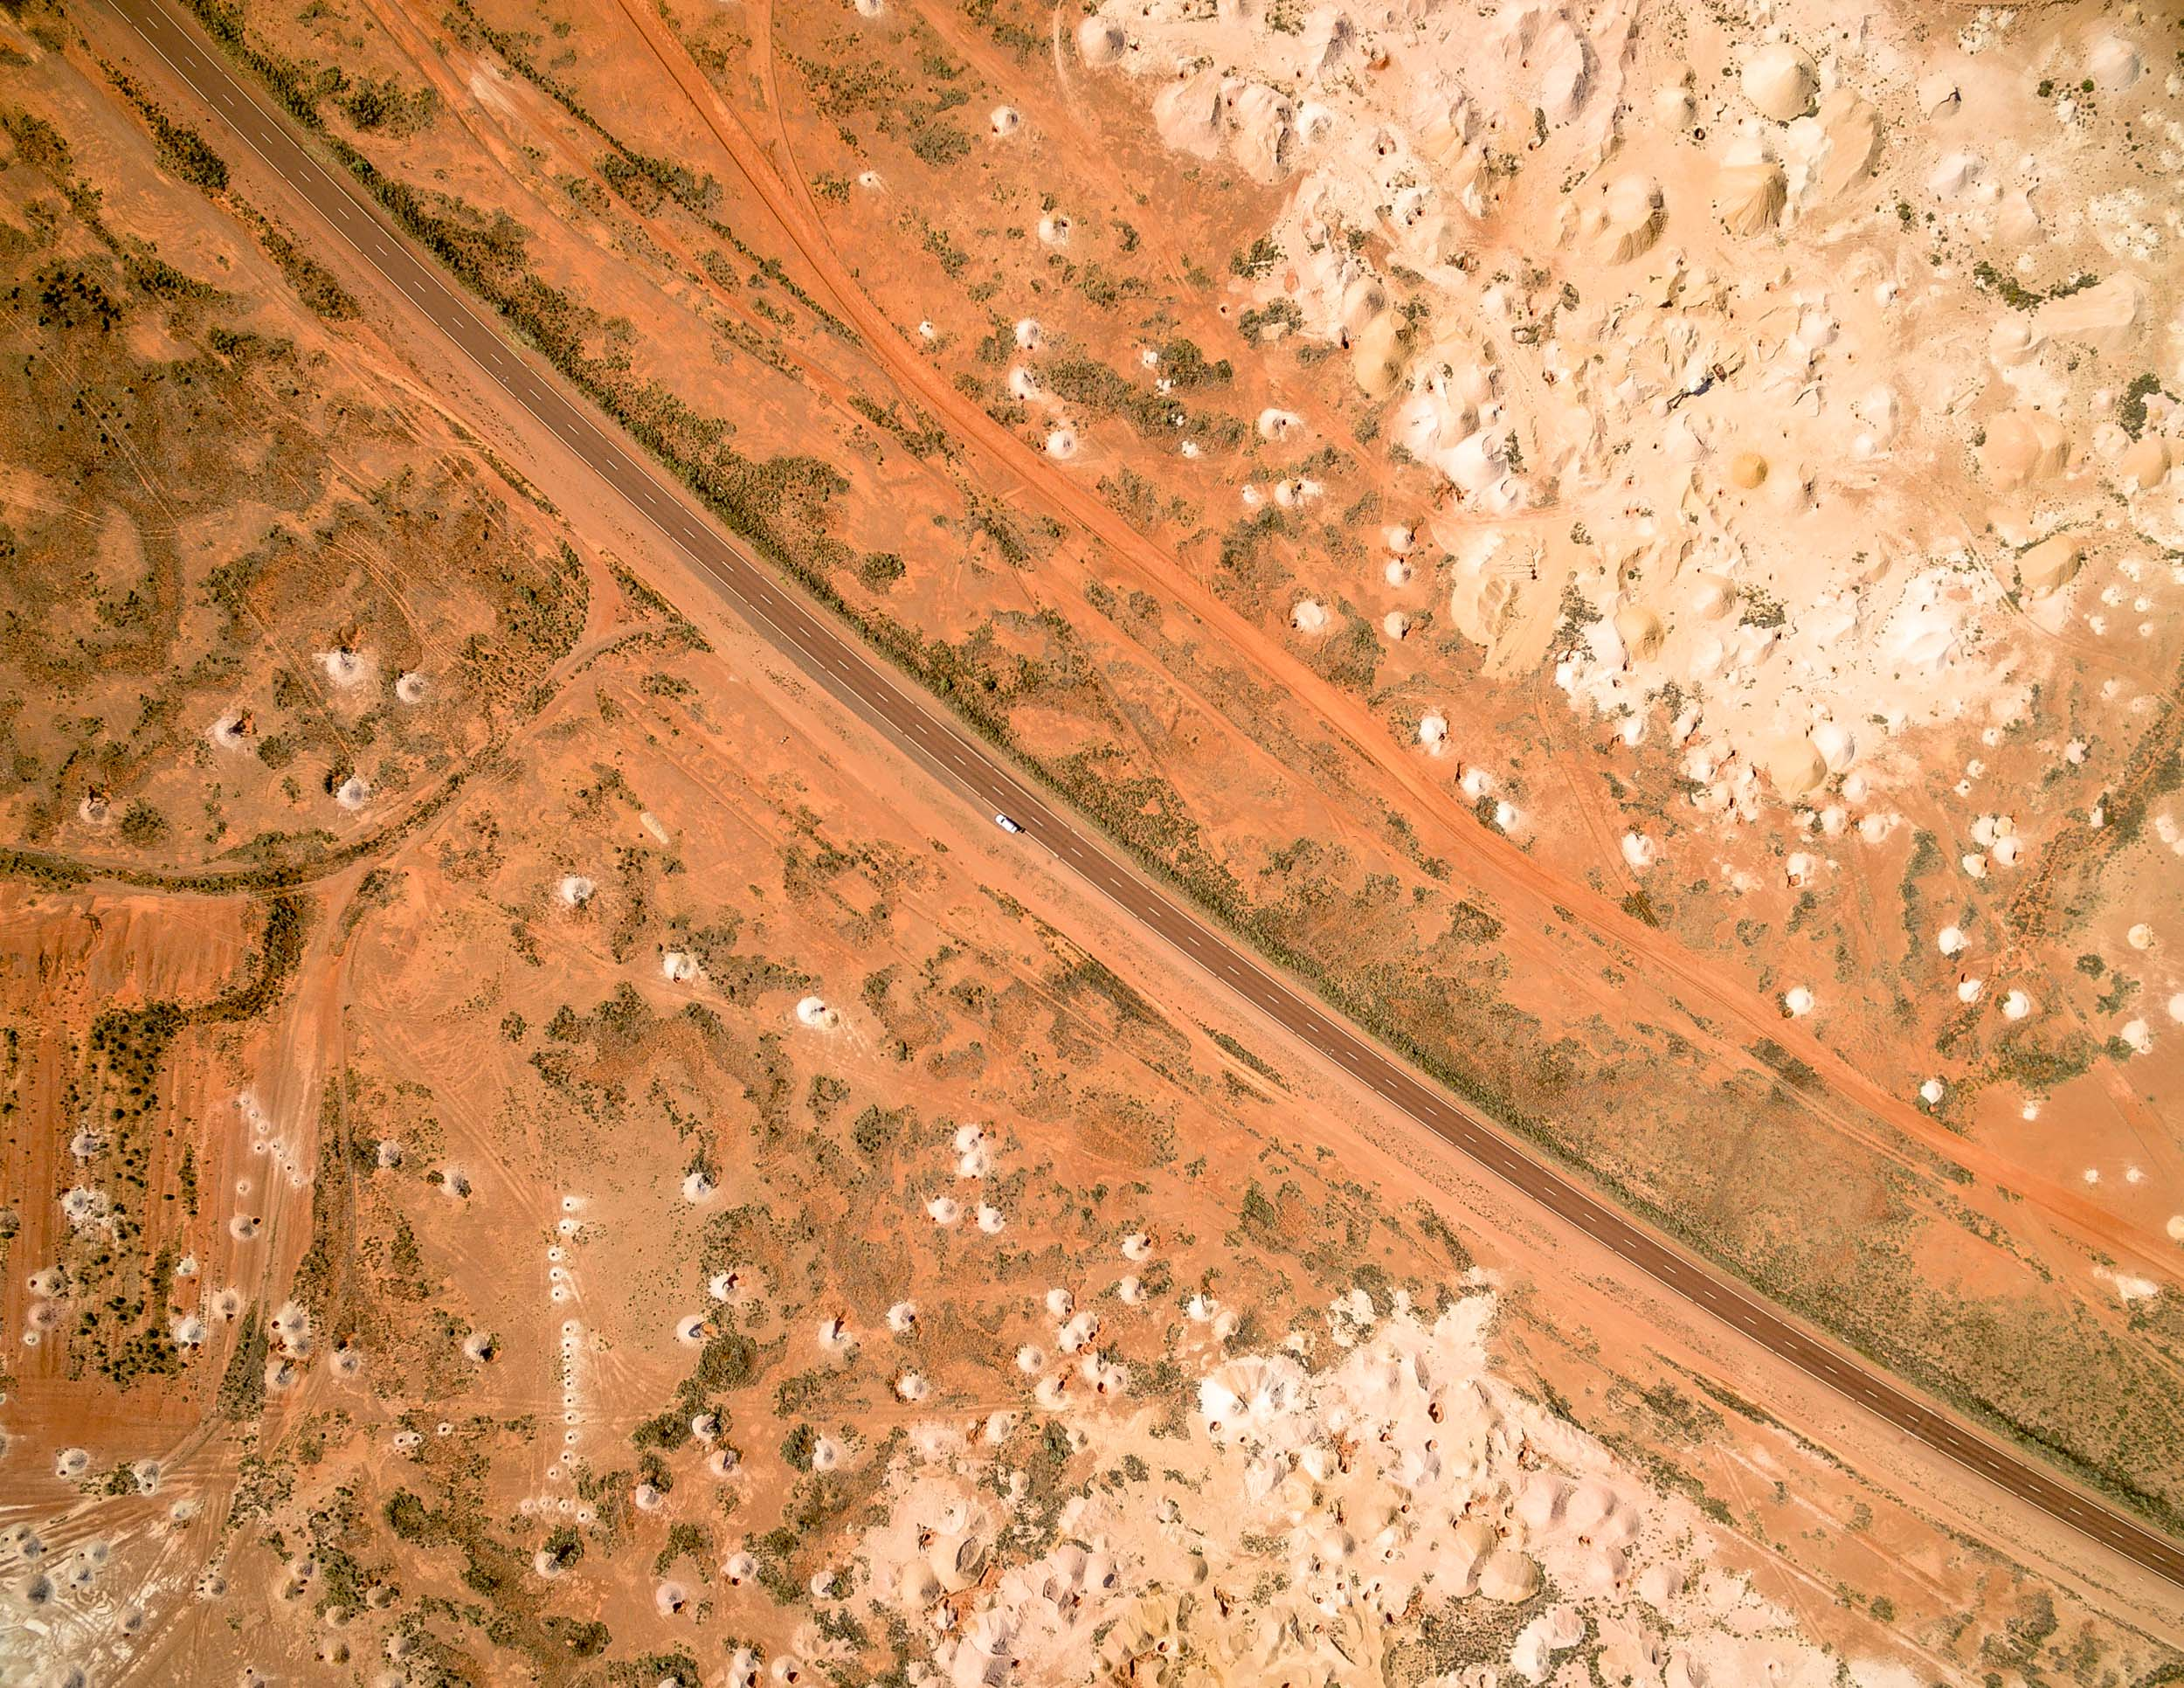 Best things to do in Coober Pedy: The Opal fields in Coober Pedy